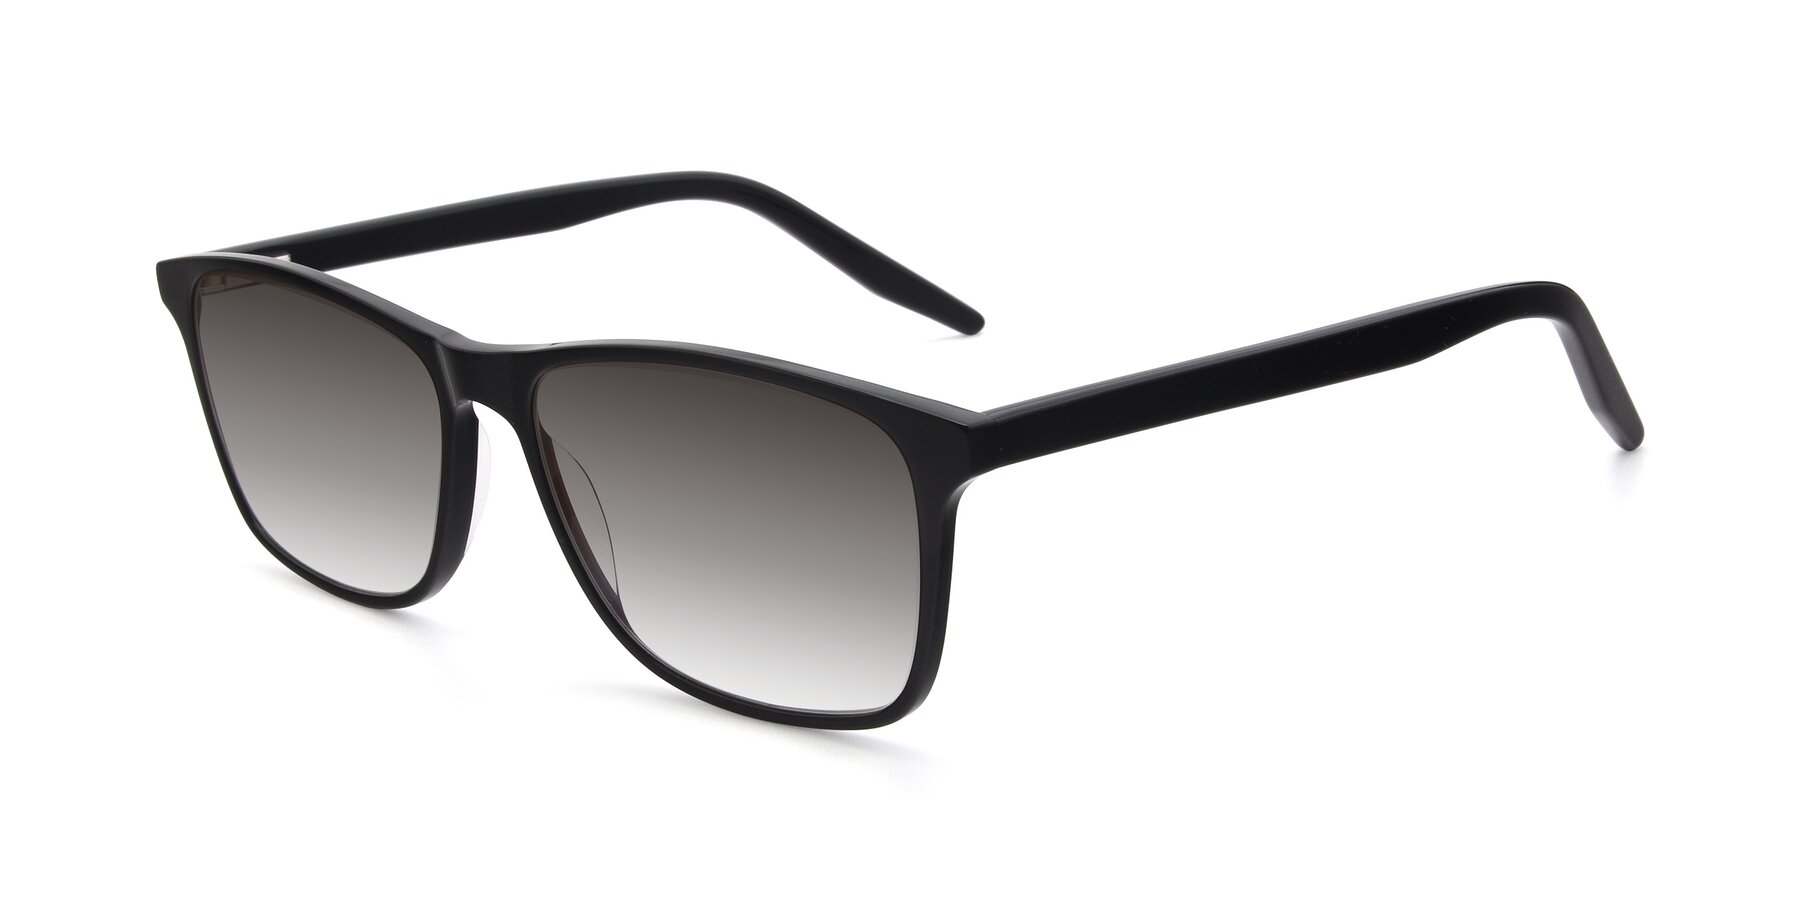 Angle of 17500 in Black with Gray Gradient Lenses